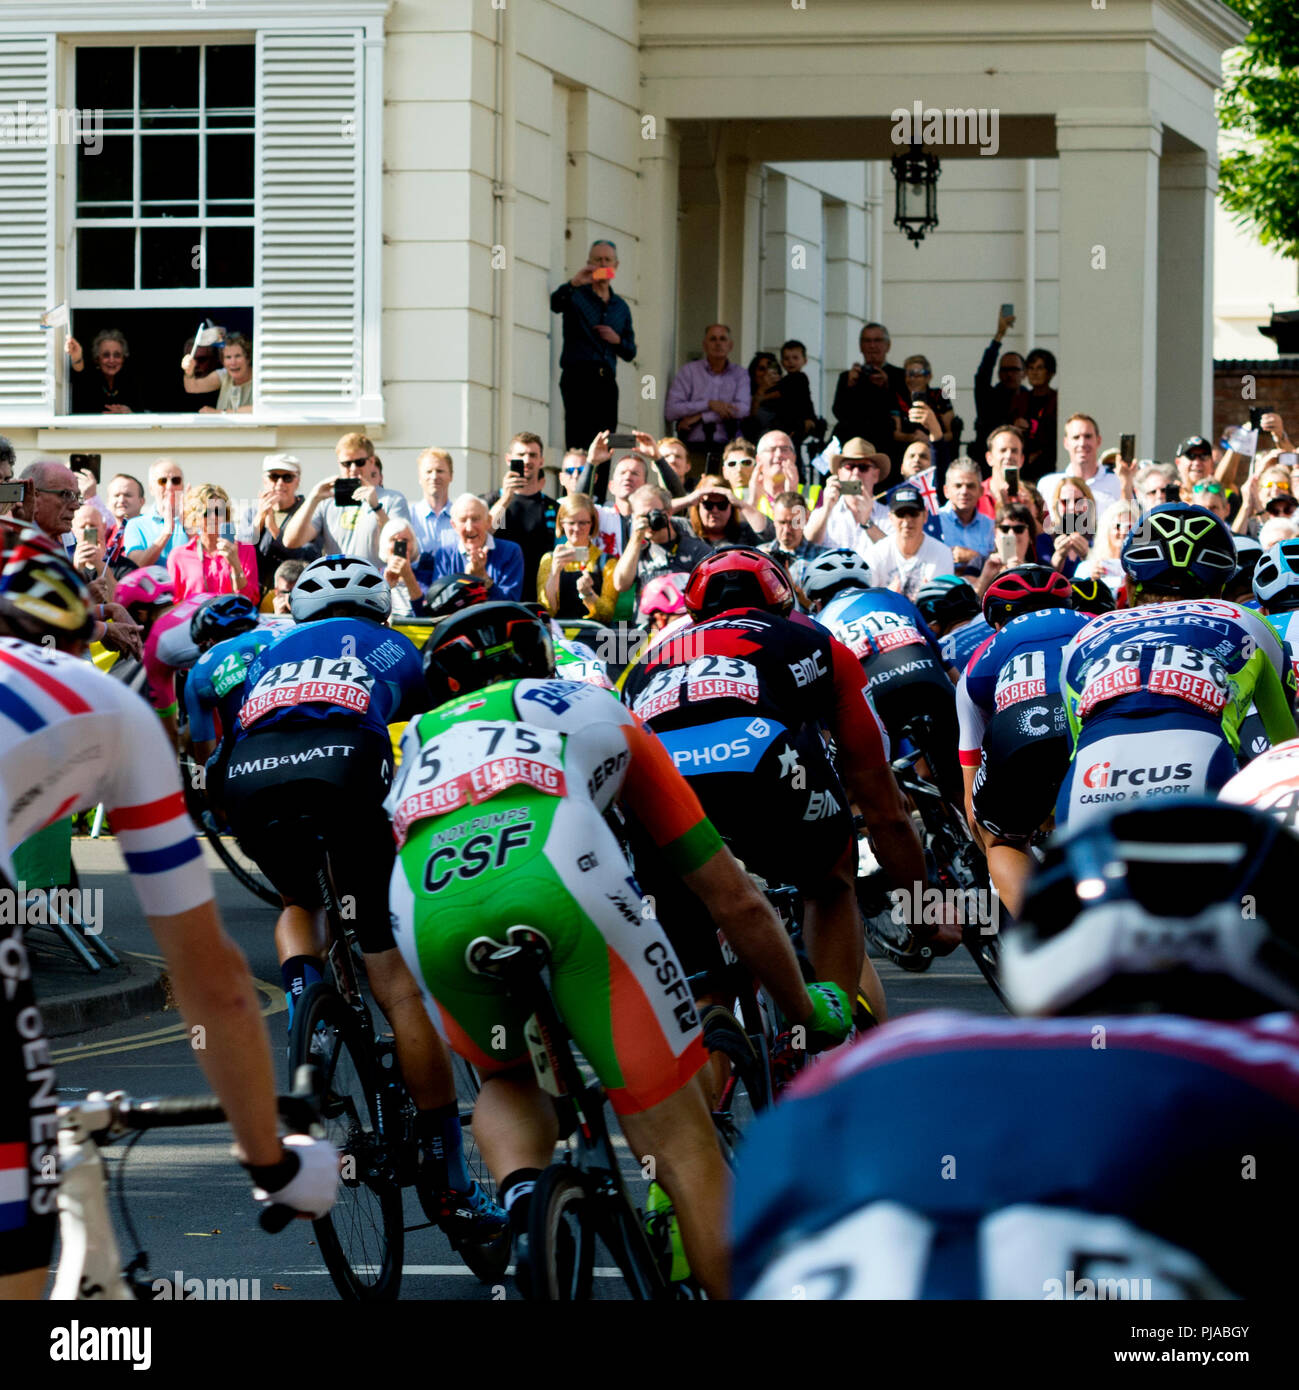 5th September 2018. Leamington Spa, Warwickshire, England, UK. People cheer as riders approach the finish of Stage Four of the OVO Energy Tour of Britain cycle race in Leamington Spa. - Stock Image